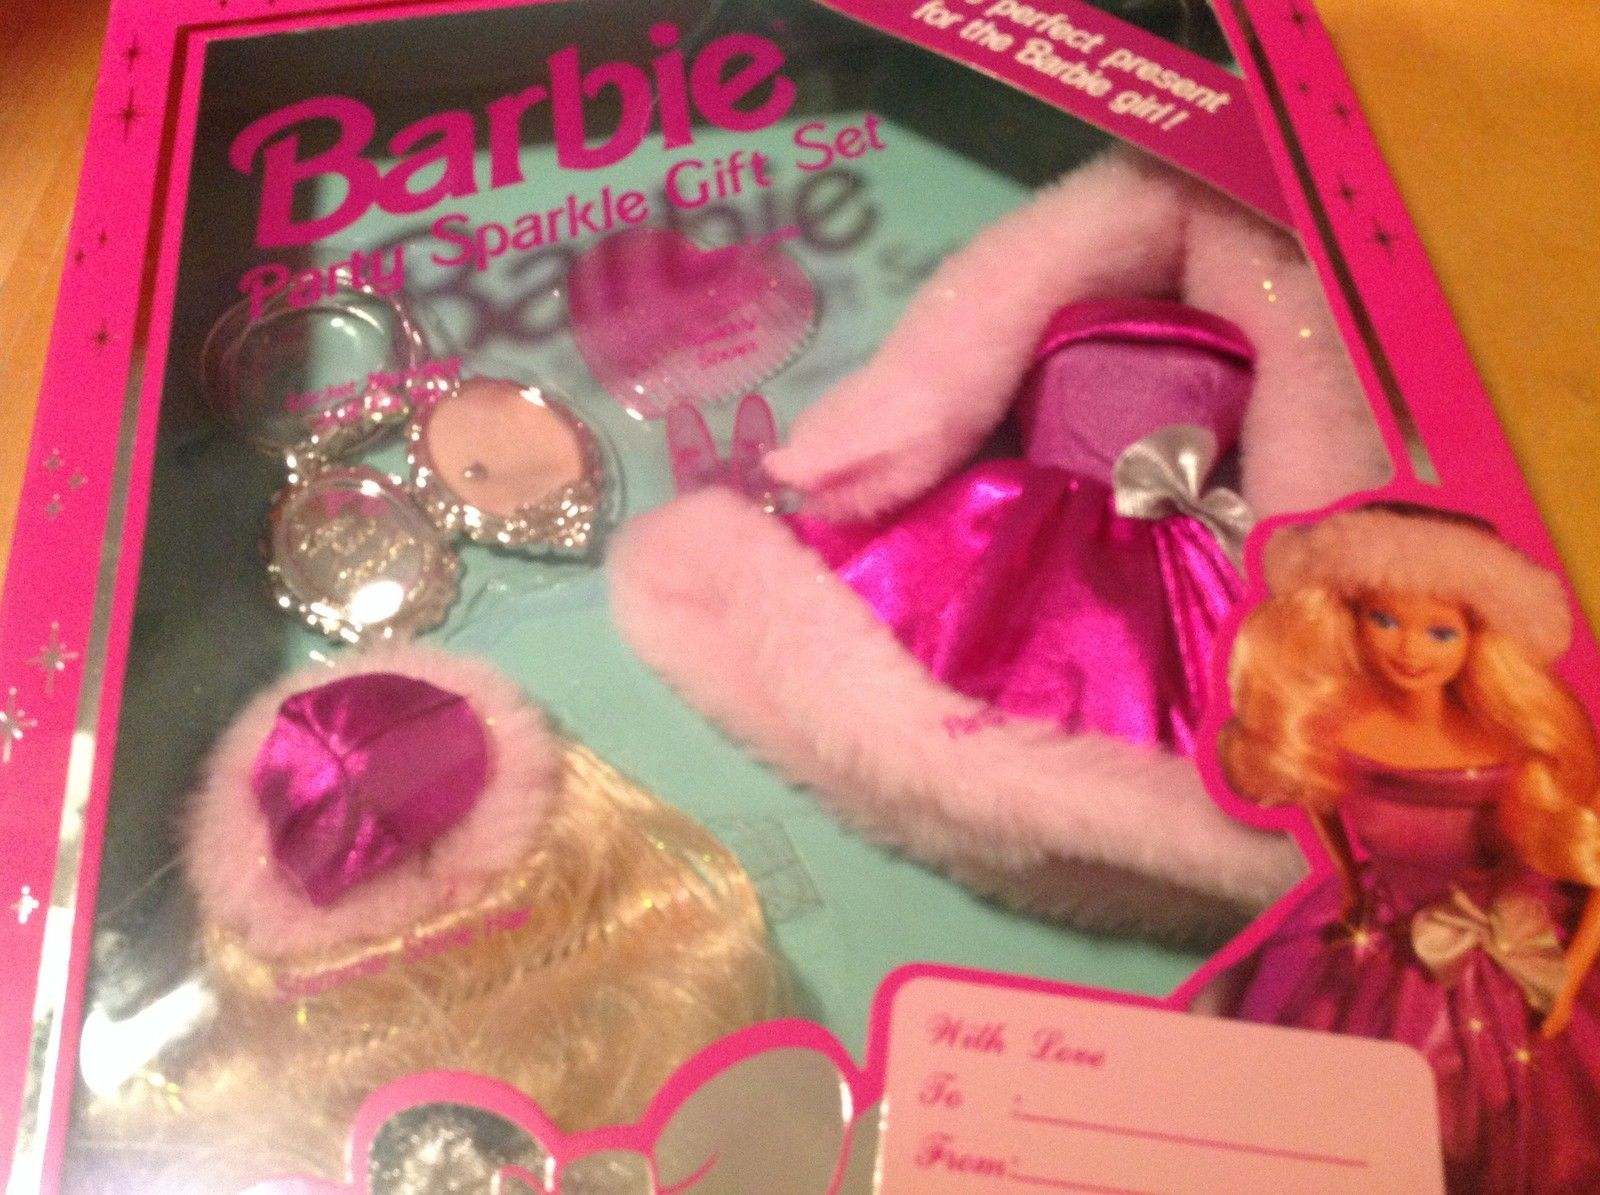 1994 Barbie Party Sparkle Gift Set Fashions NRFB 67027 Heart Comb Locket with Photos and Mirror for You  Wig Fur Hat / Dress